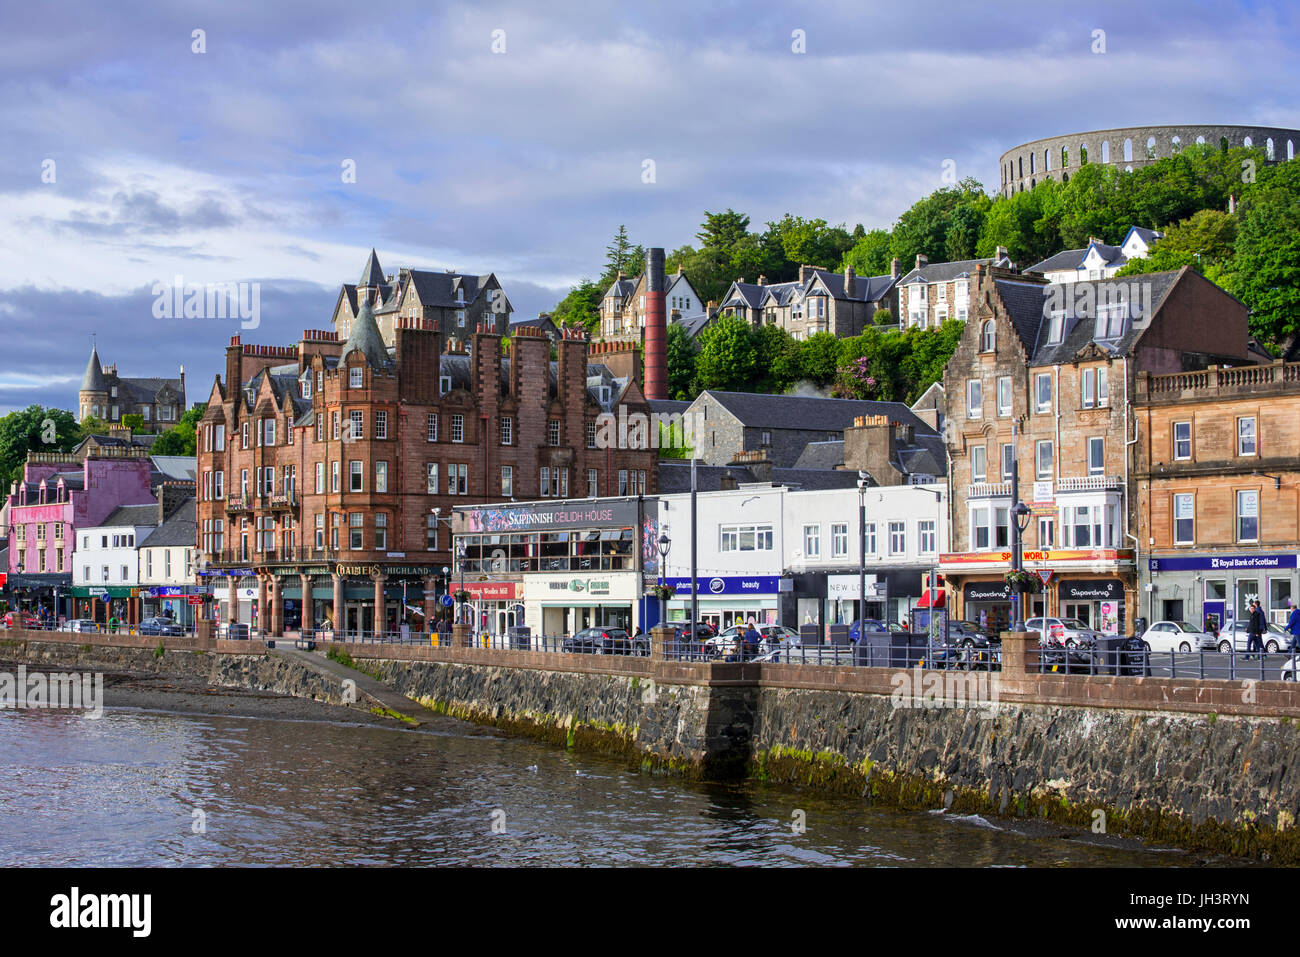 Restaurants and shops along the waterfront at Oban, Argyll and Bute, Scotland, UK - Stock Image